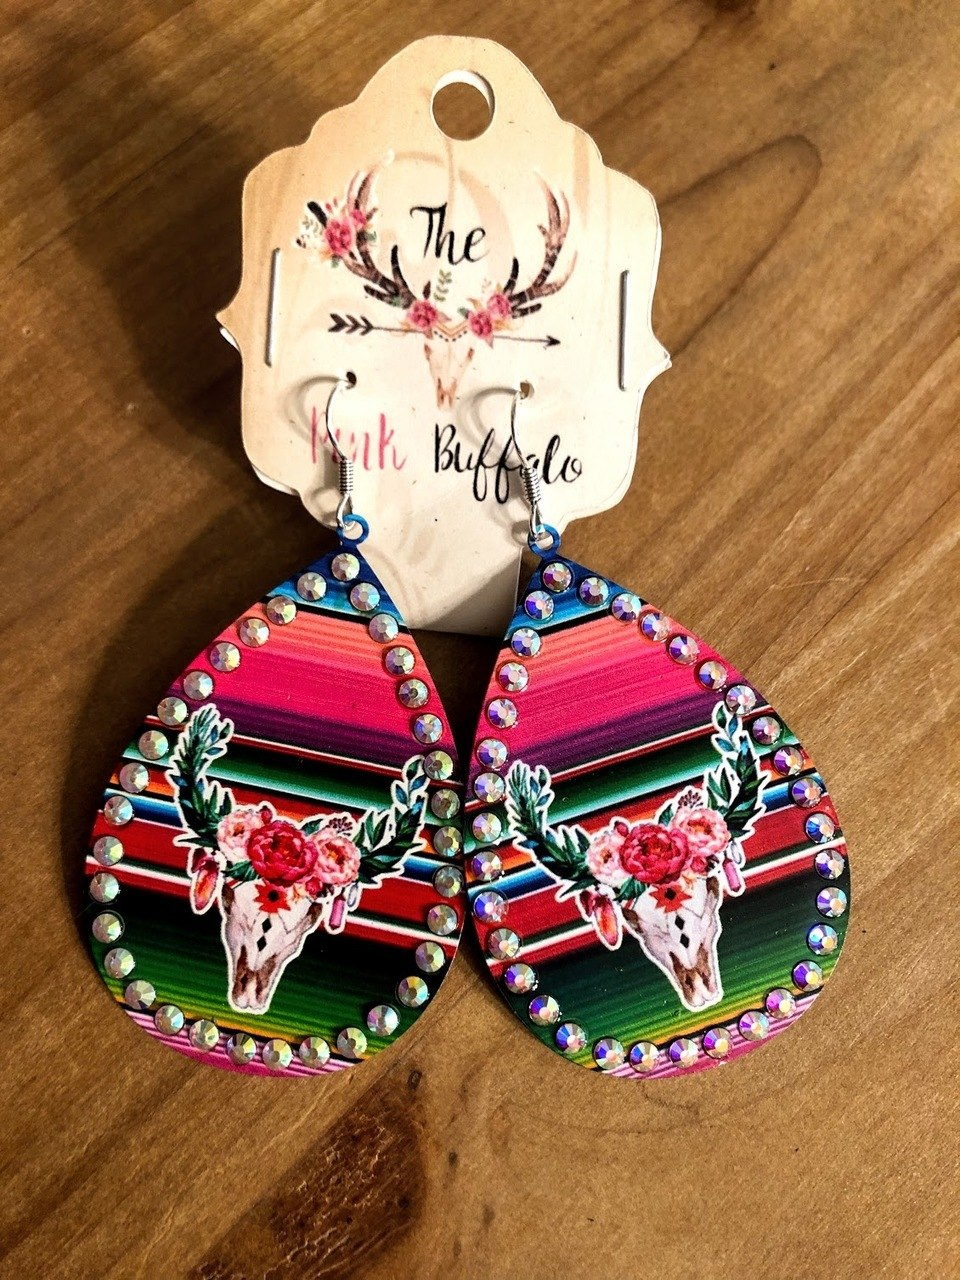 Cowskull Serape Earrings - The Pink Buffalo,LLC